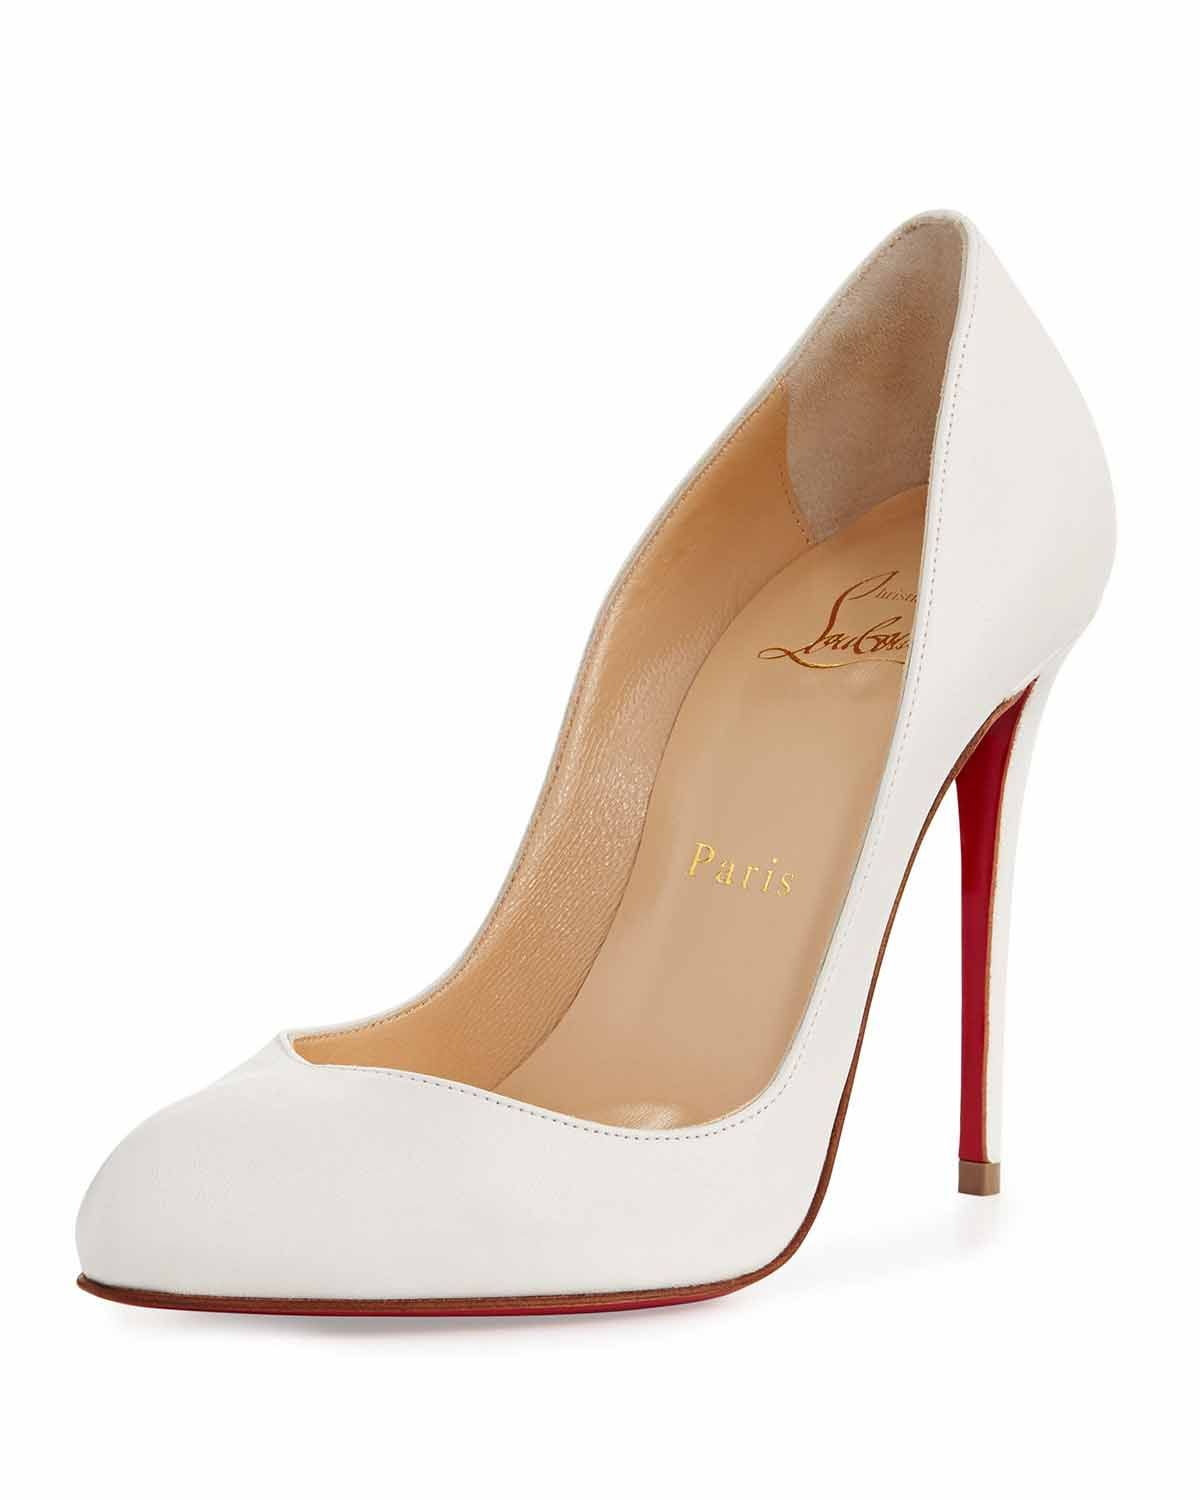 0e6d2dd81b7 Christian Louboutin Breche Leather 100mm Red Sole Pump | SHOES ...